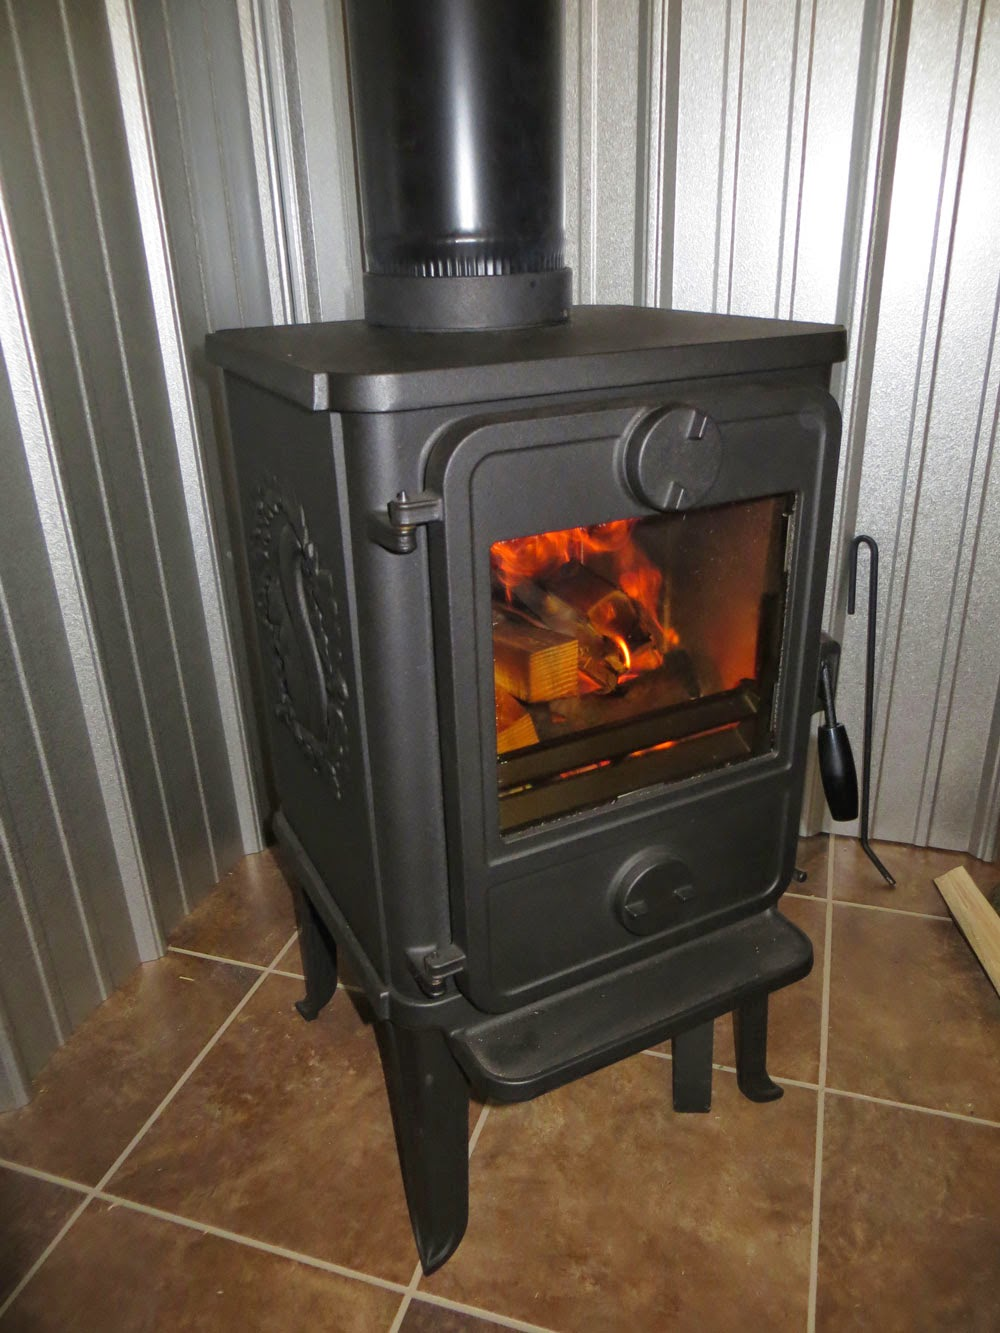 maitri homestead morso 1410 wood stove install first impressions. Black Bedroom Furniture Sets. Home Design Ideas